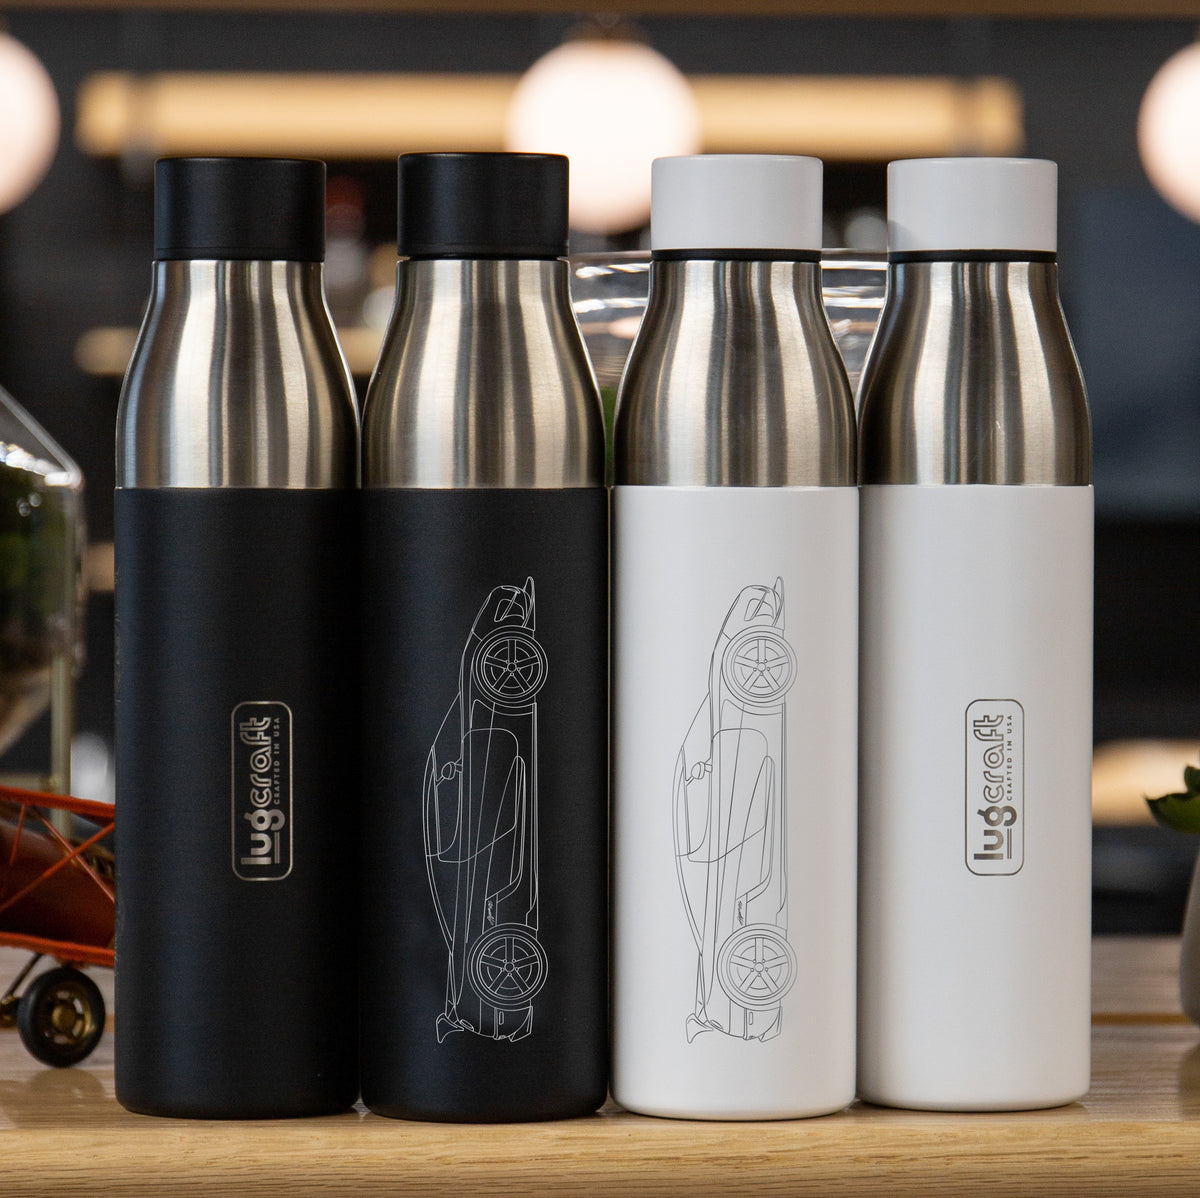 Koenigsegg Agera Insulated Stainless Steel Water Bottle - 21 oz